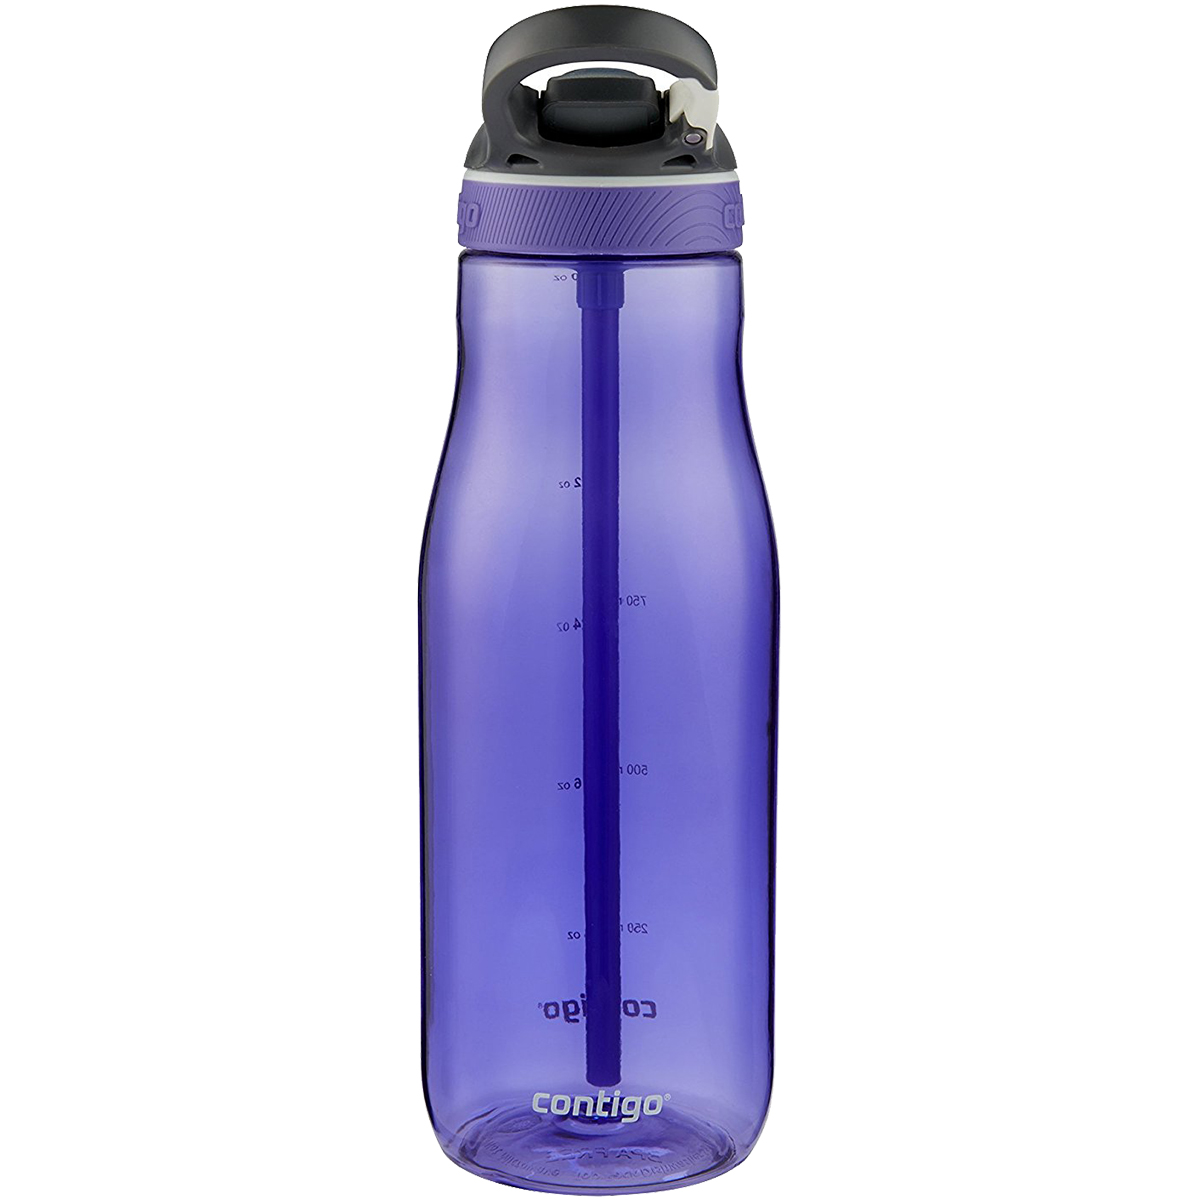 Contigo-40-oz-Ashland-Autospout-Water-Bottle thumbnail 10